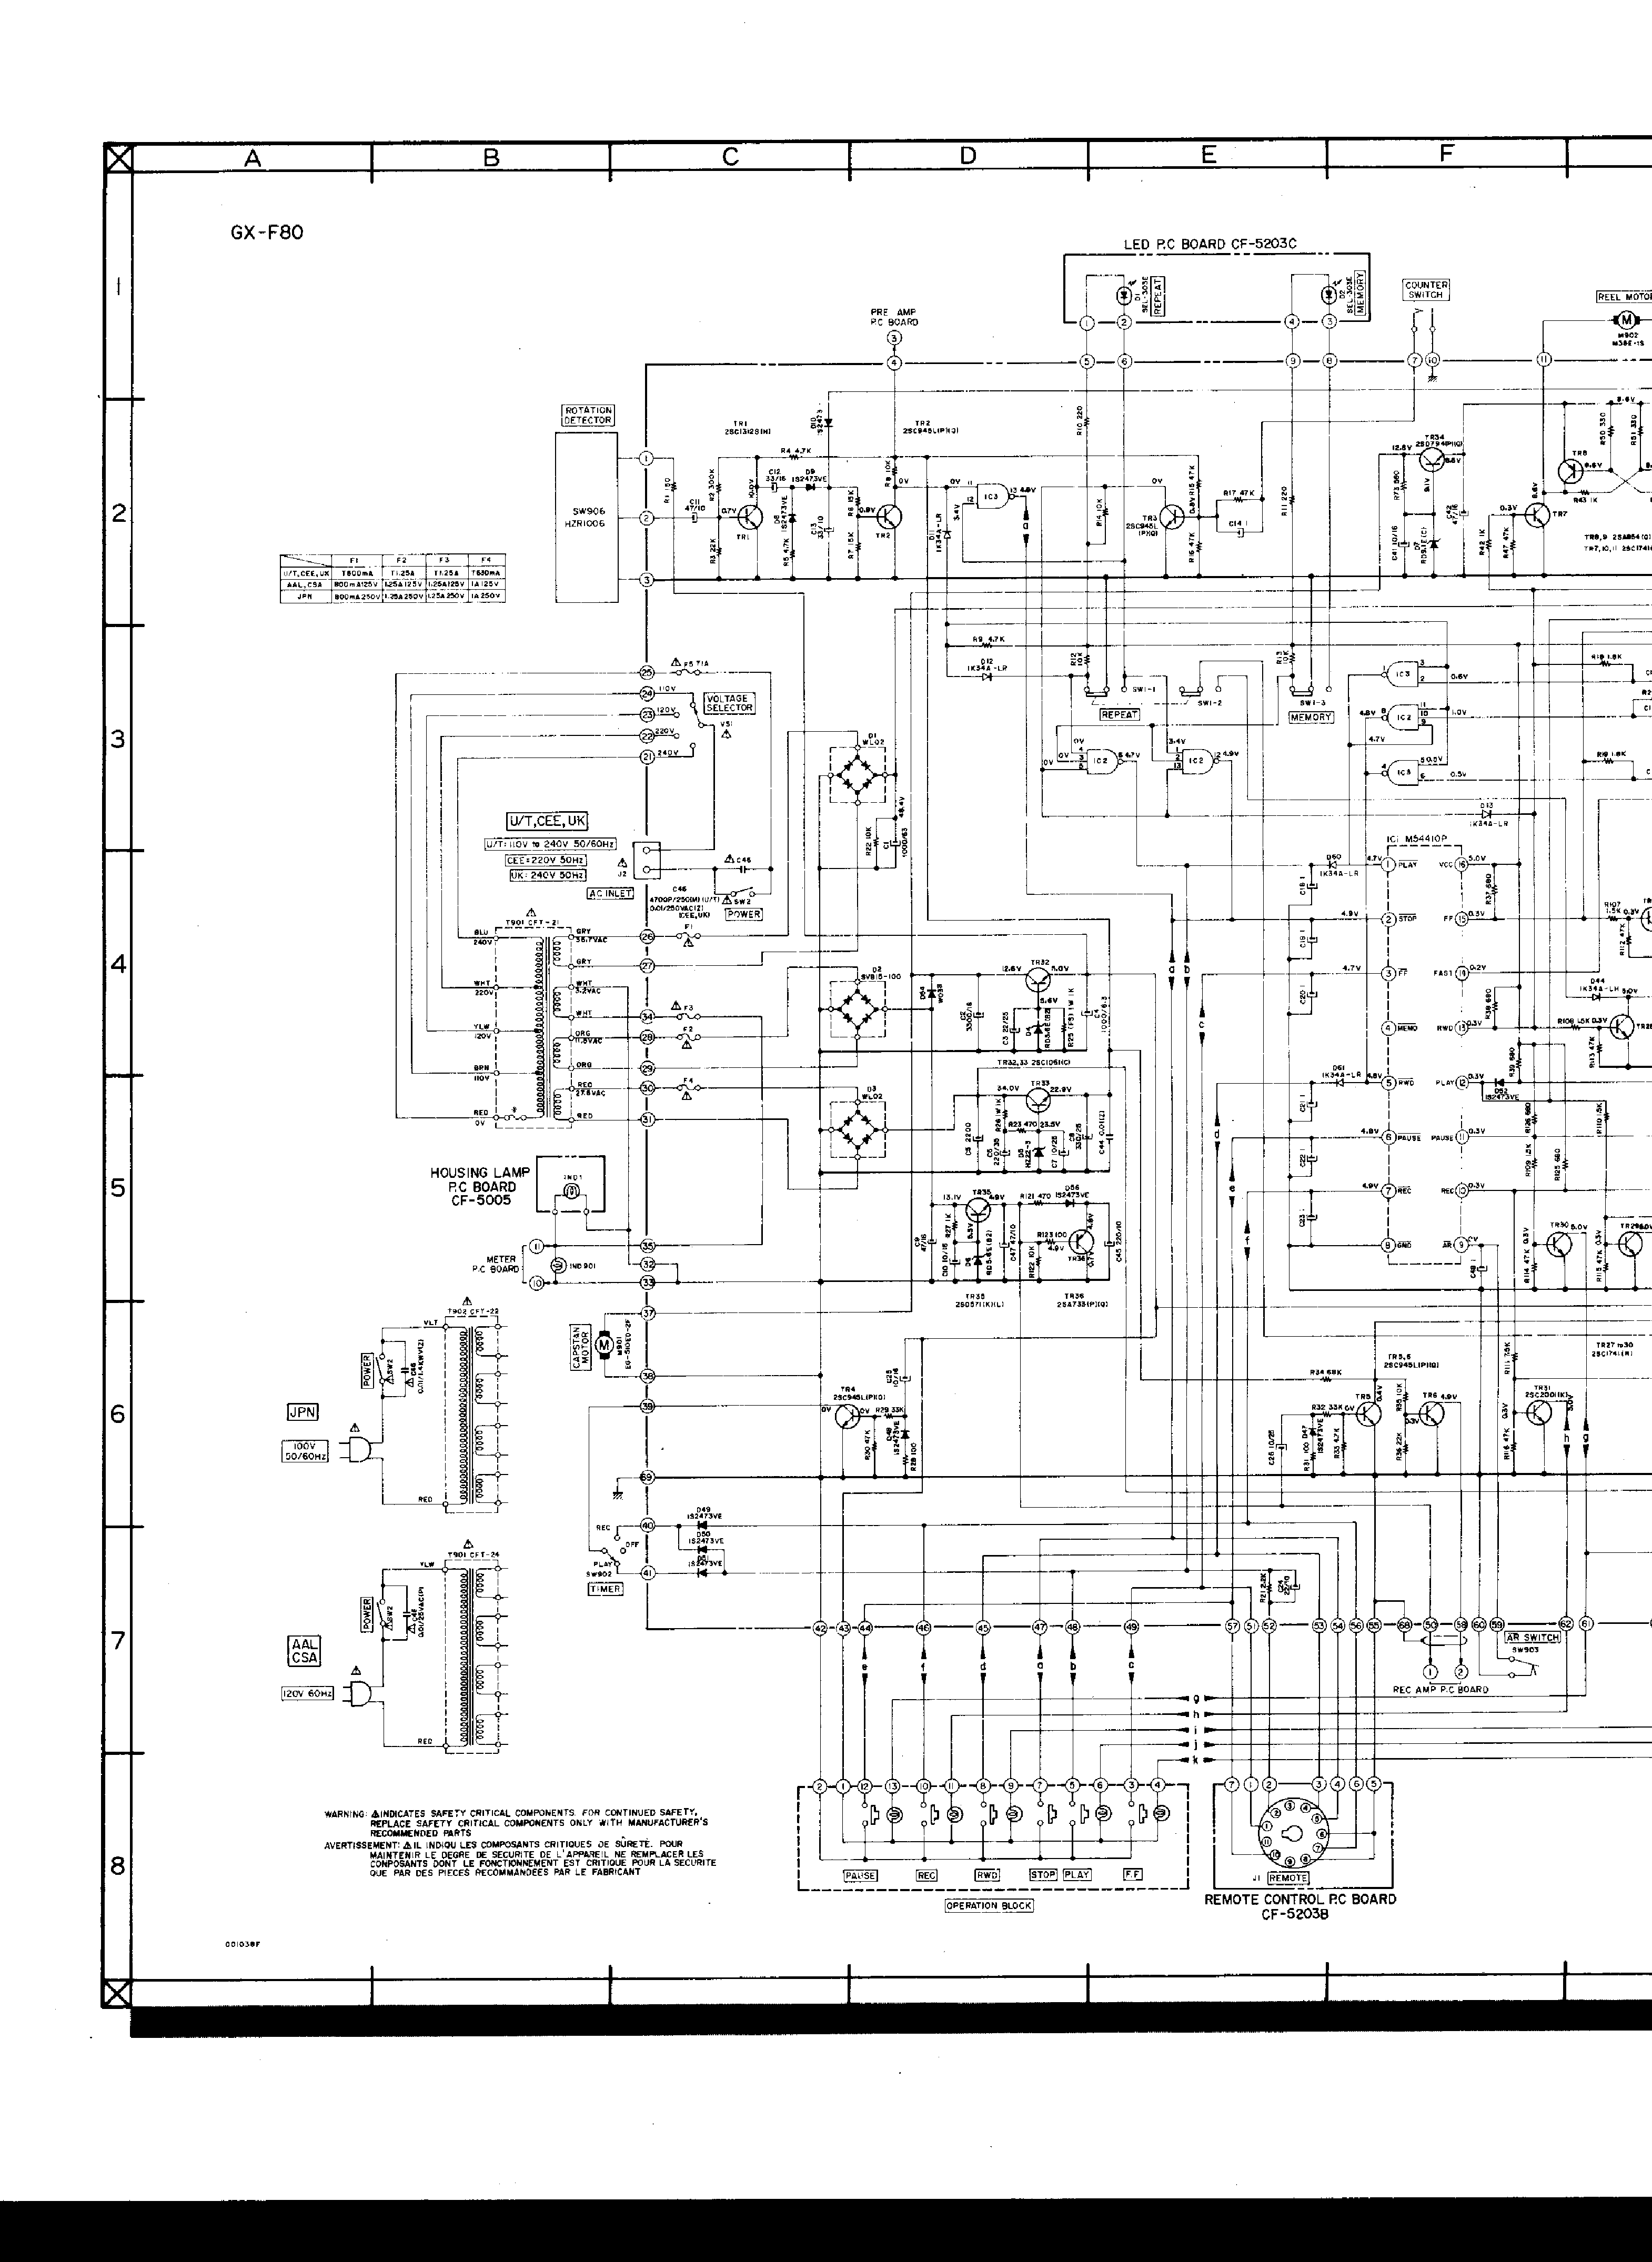 AKAI GX-F80 SCH Service Manual download, schematics